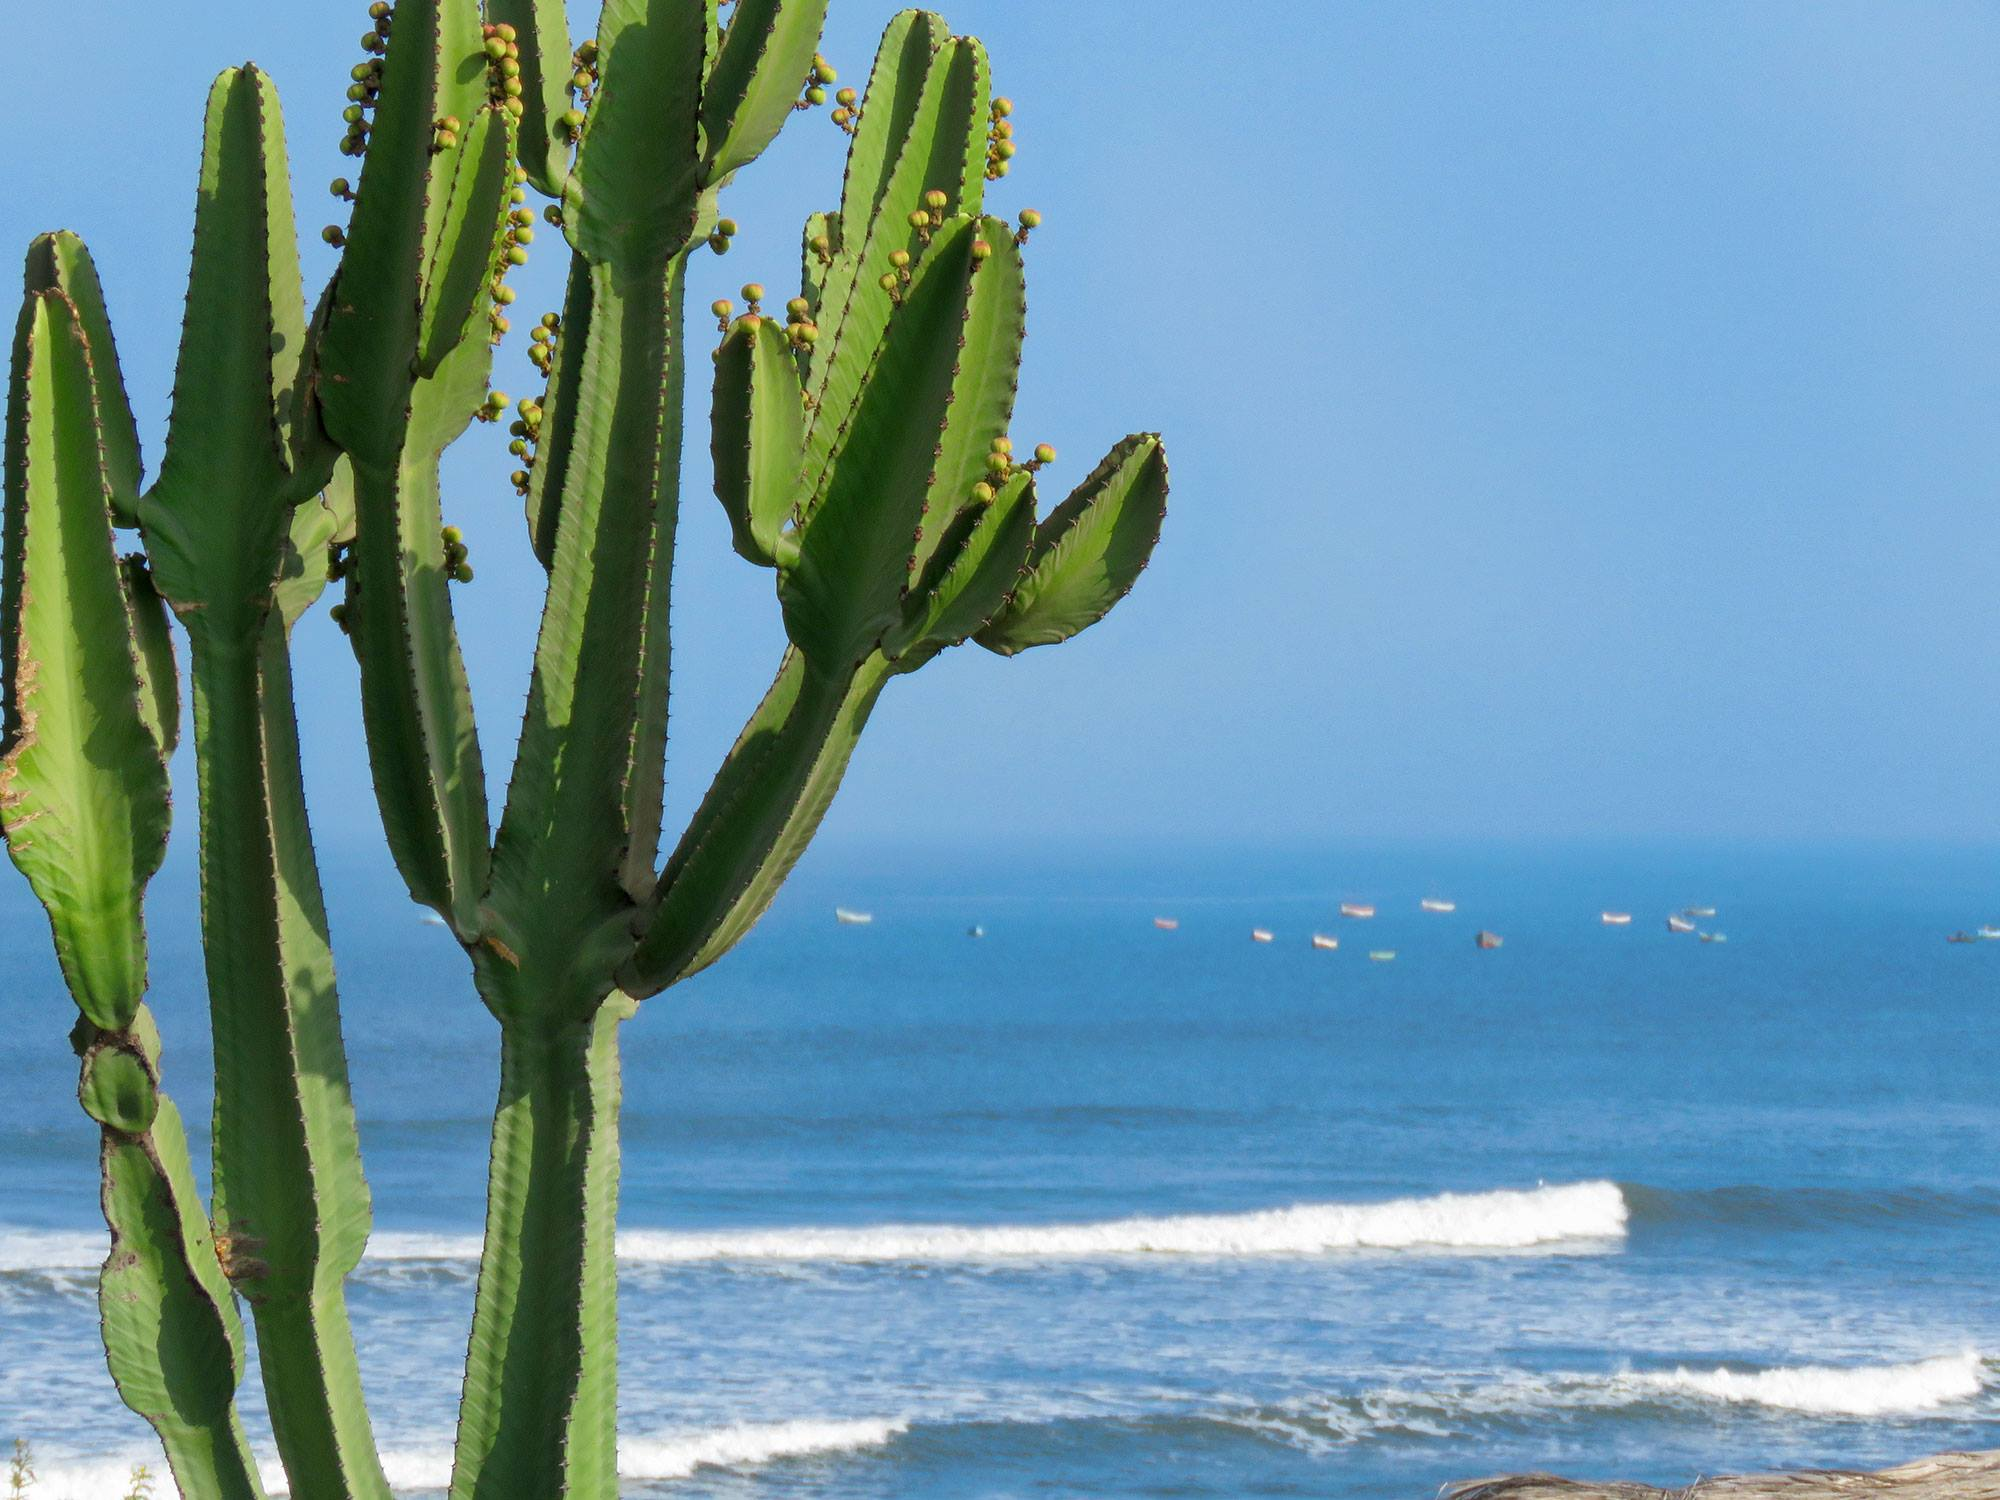 Desert Cactus Waves and Fishing Boats